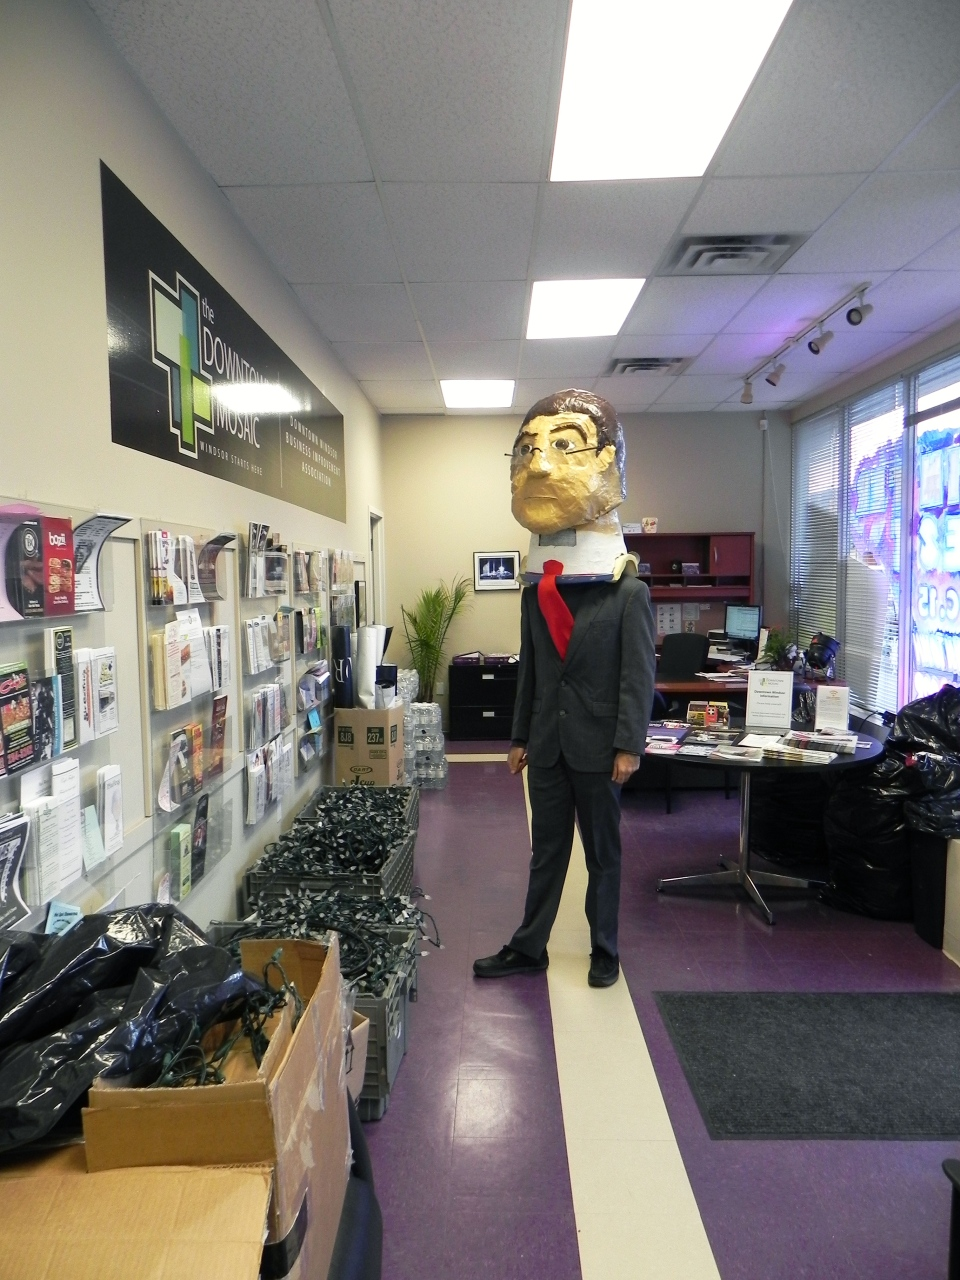 A paper mache head in Stephen Colbert's likeness will be featured in Saturday's Windsor Winter Fest Holiday Parade. (Courtesy the Downtown Windsor BIA)